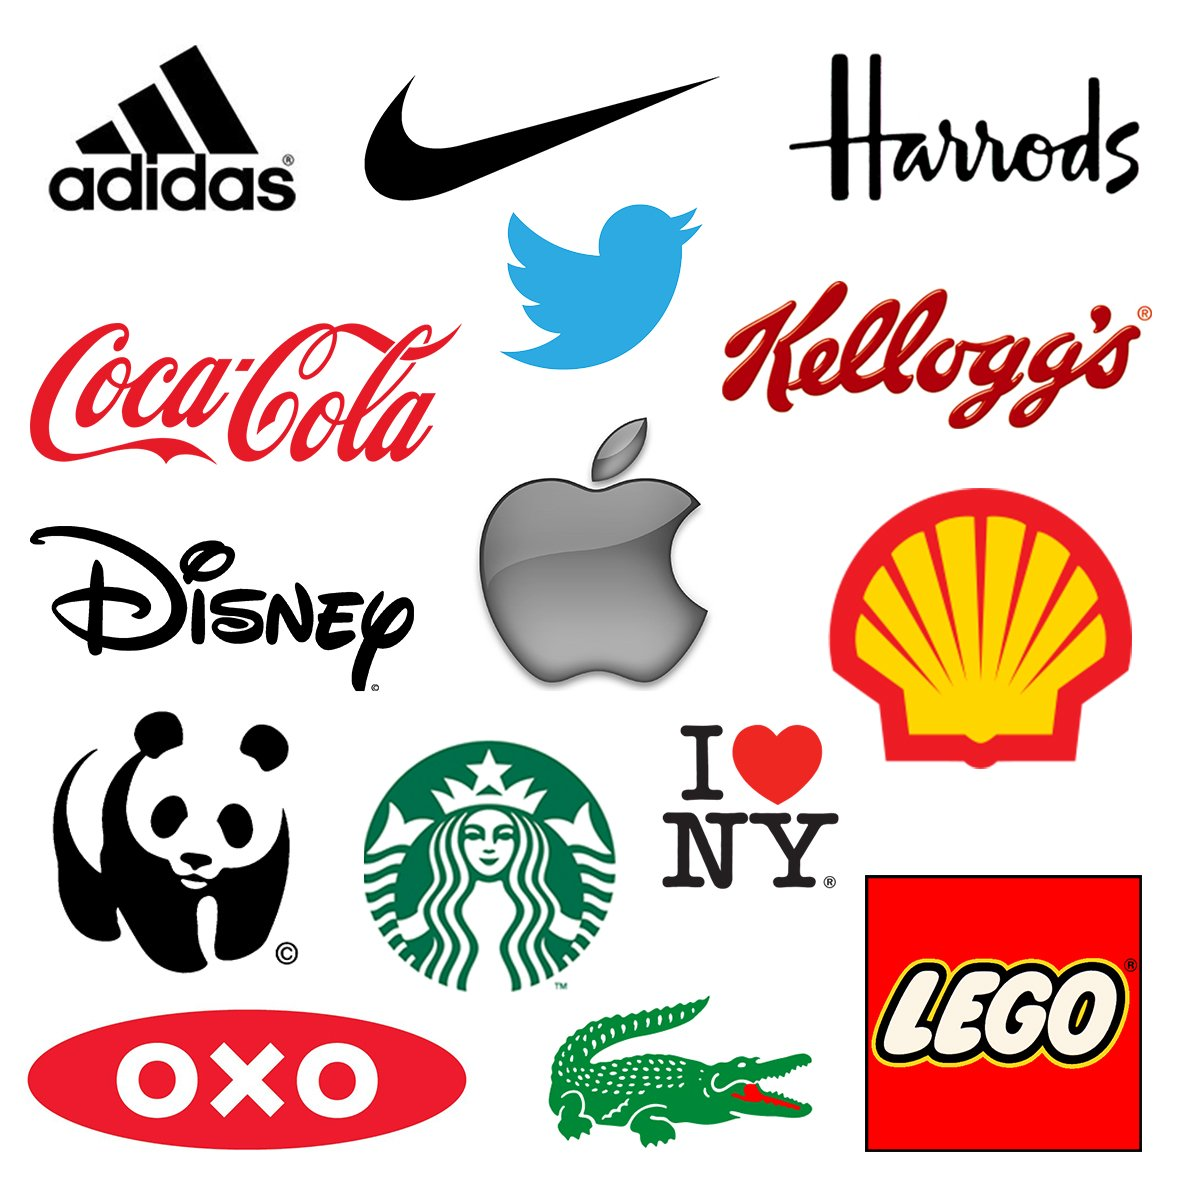 Logos and their hidden meanings gauk media world class for Top product design firms